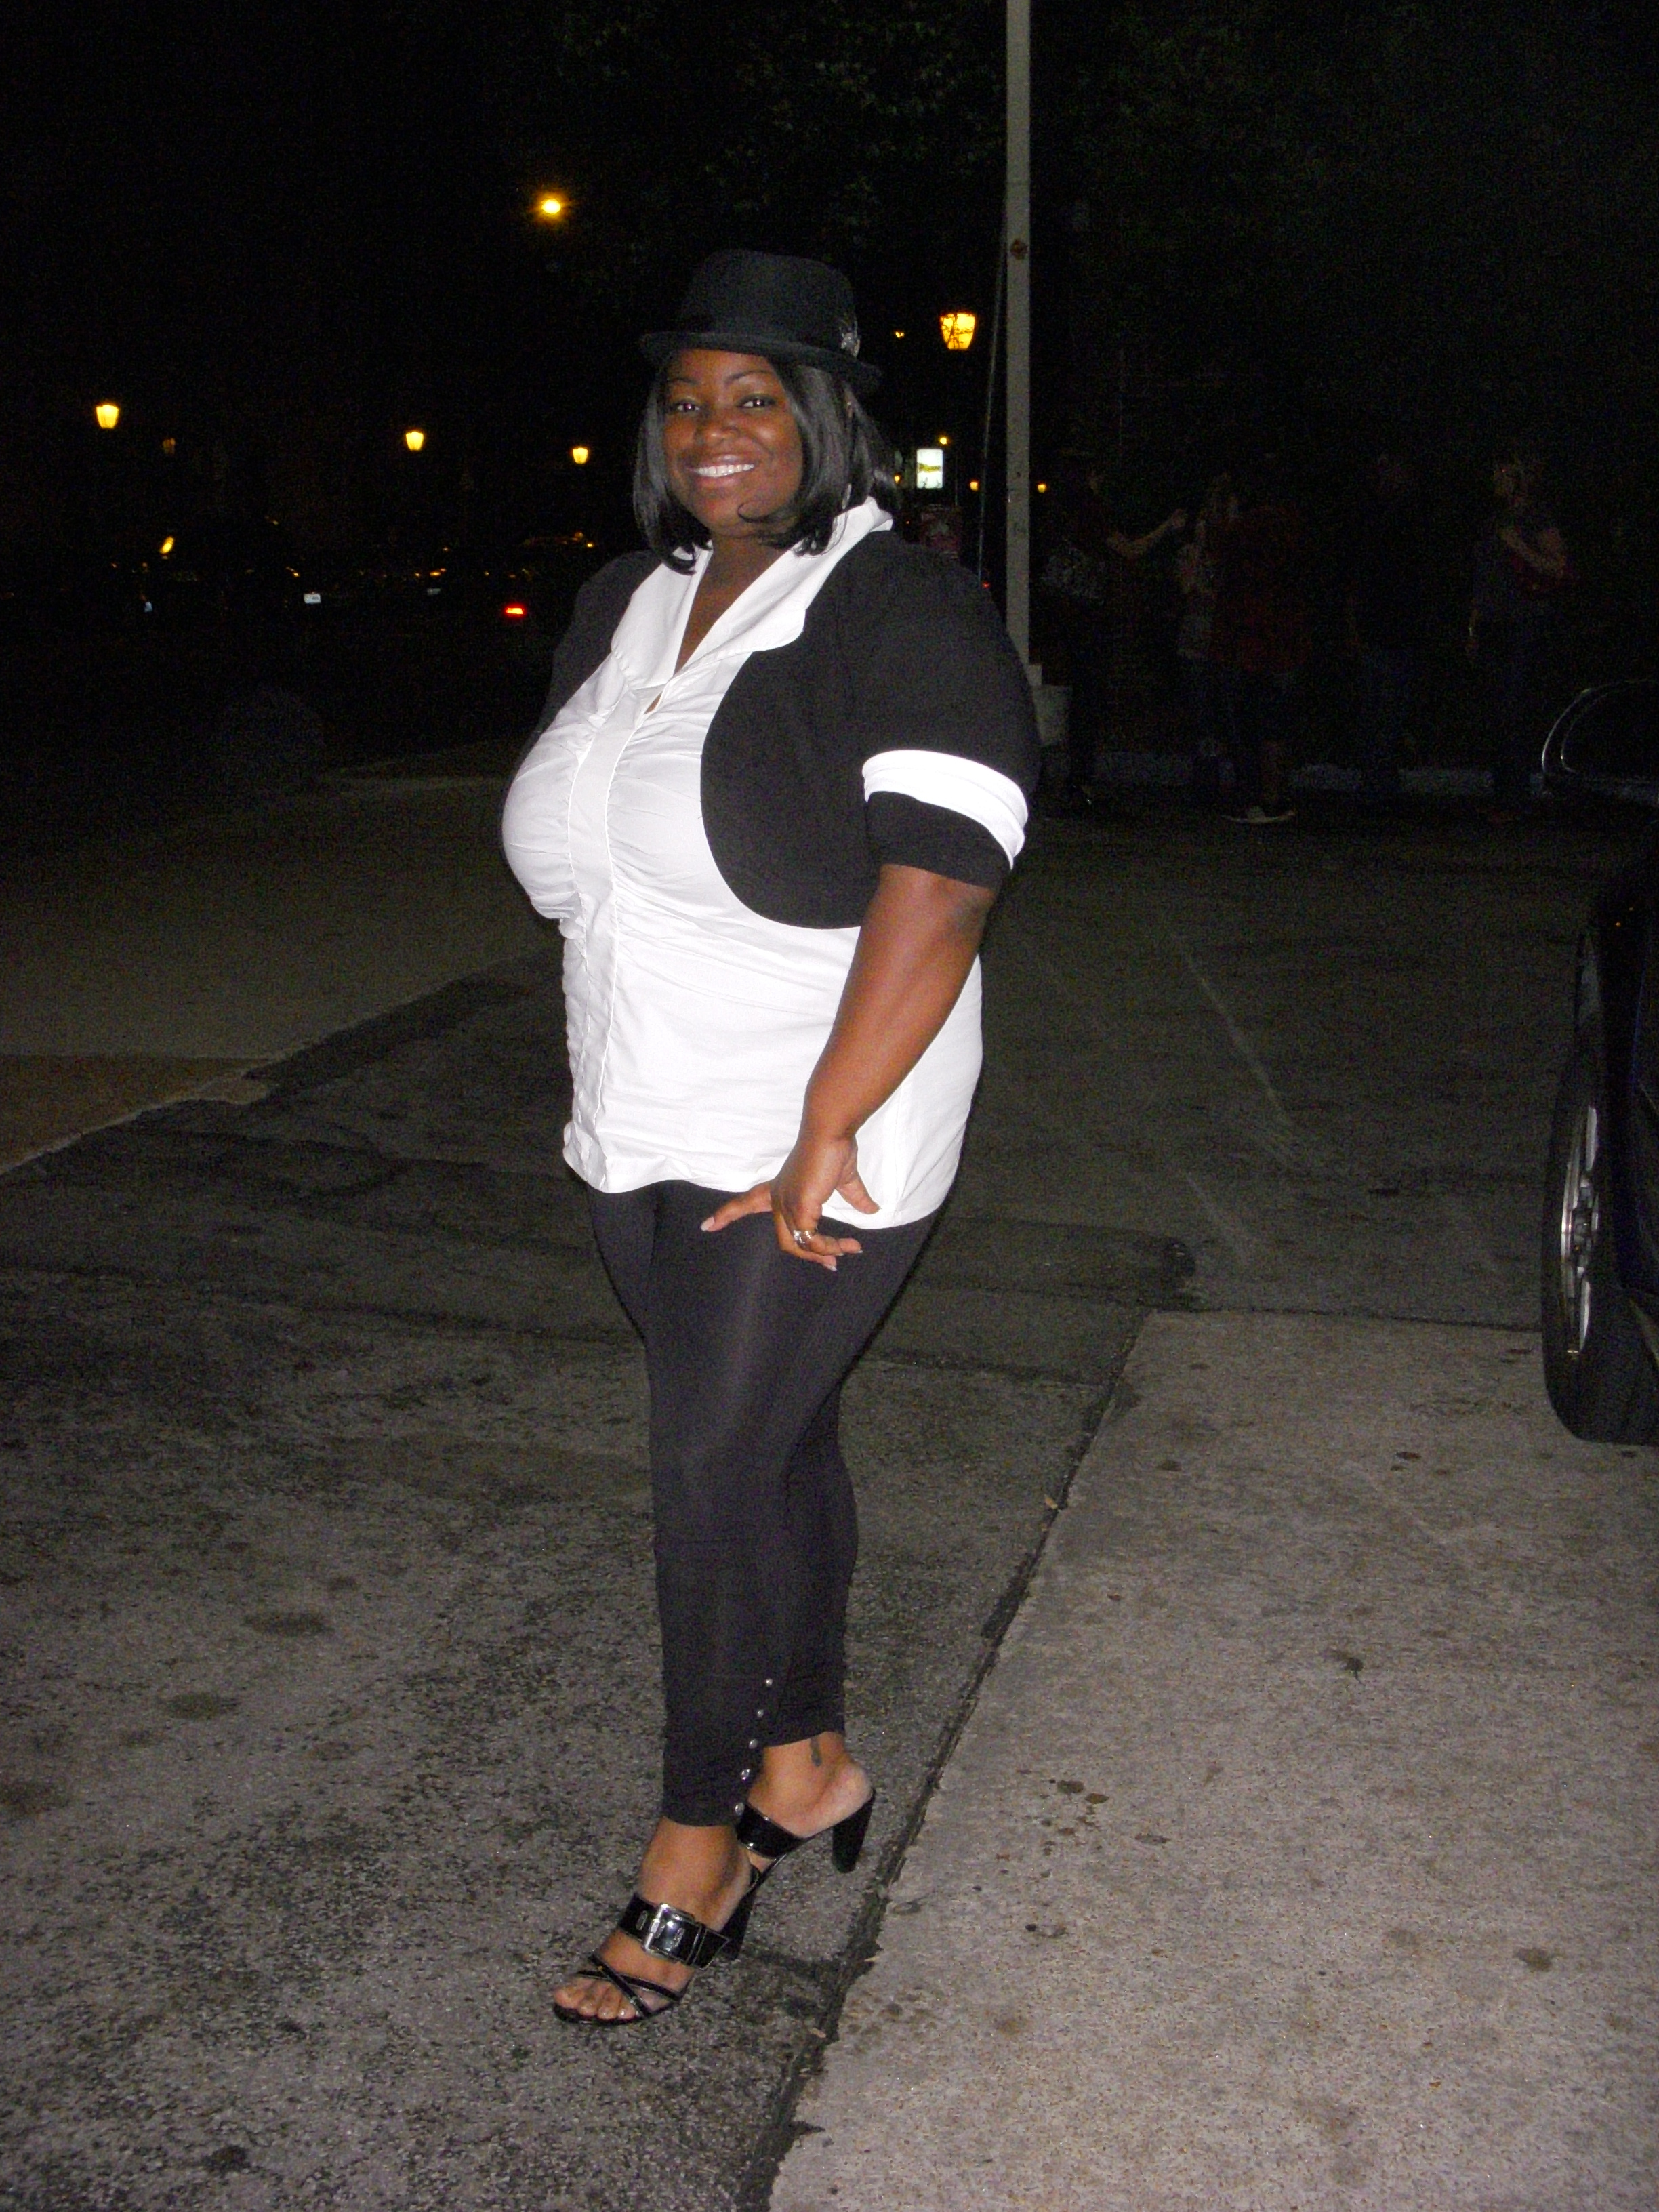 MJ Party Pic Of Me